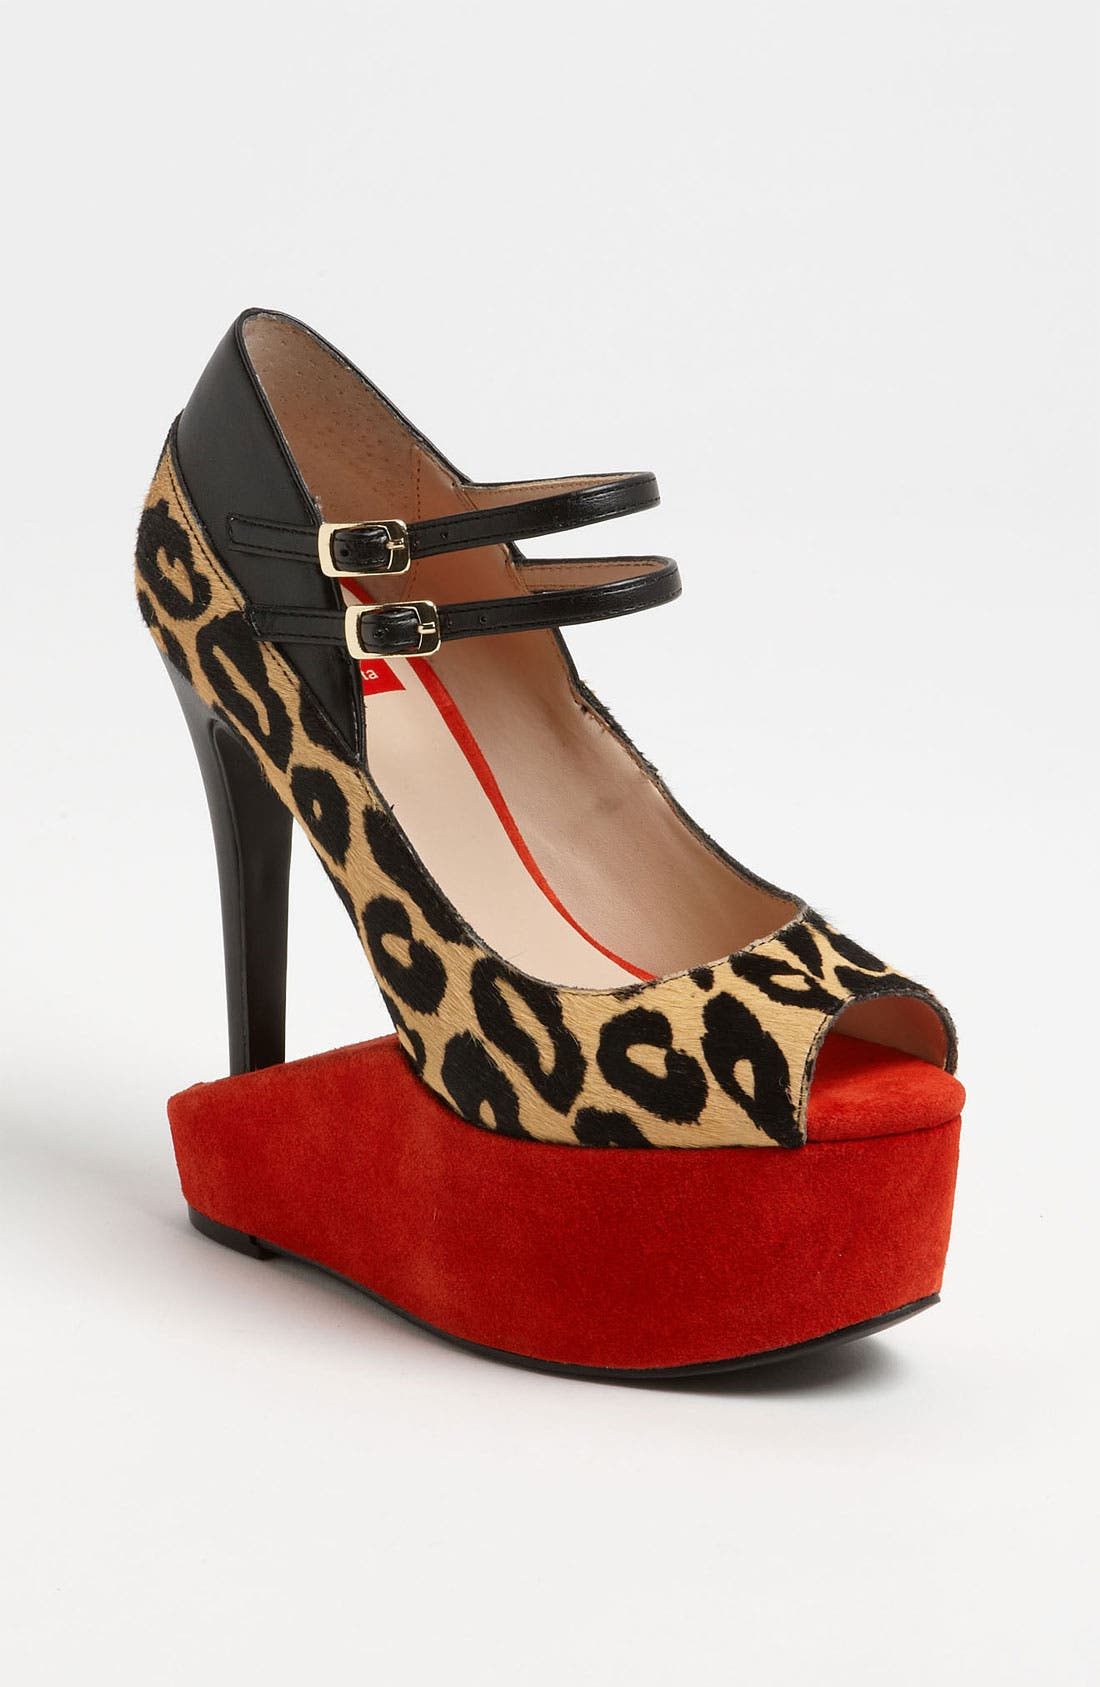 Main Image - DV8 by Dolce Vita 'Gypsie' Pump